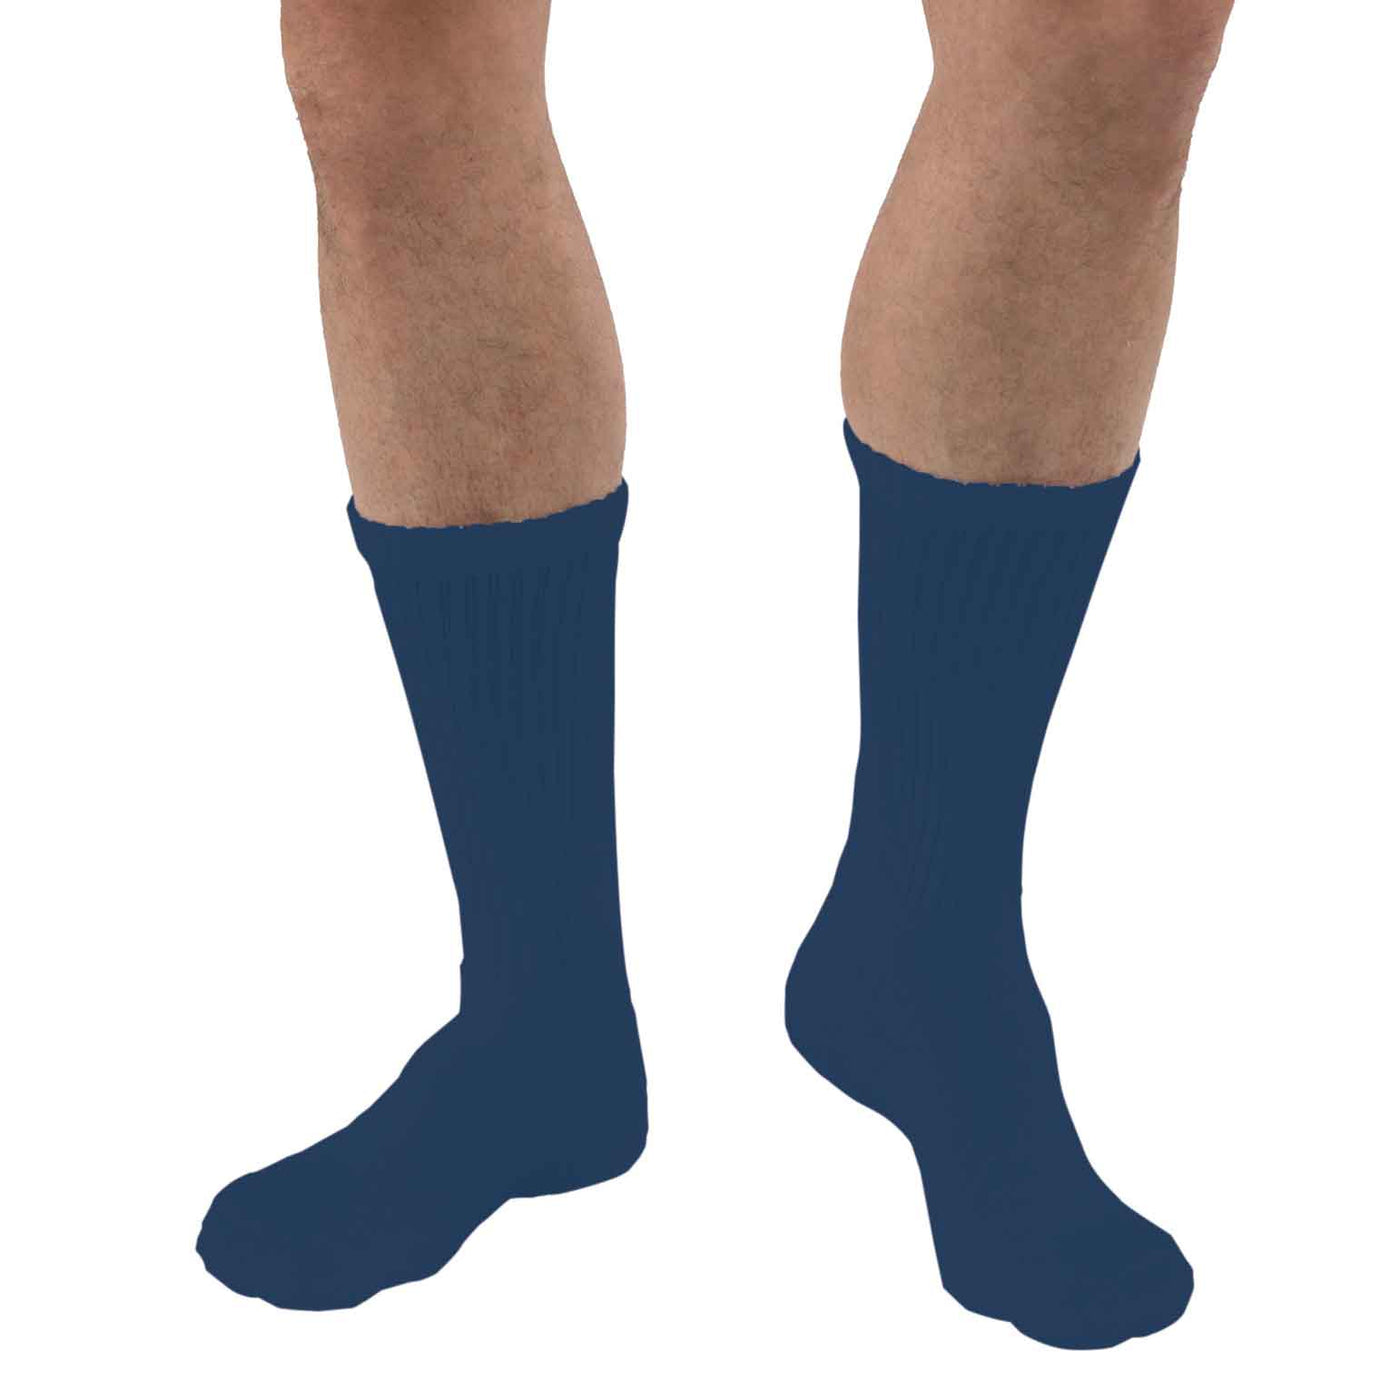 91392cdc8a1 Jobst Sensifoot Diabetic Crew Sock Light Compression 8-15mmHg ...